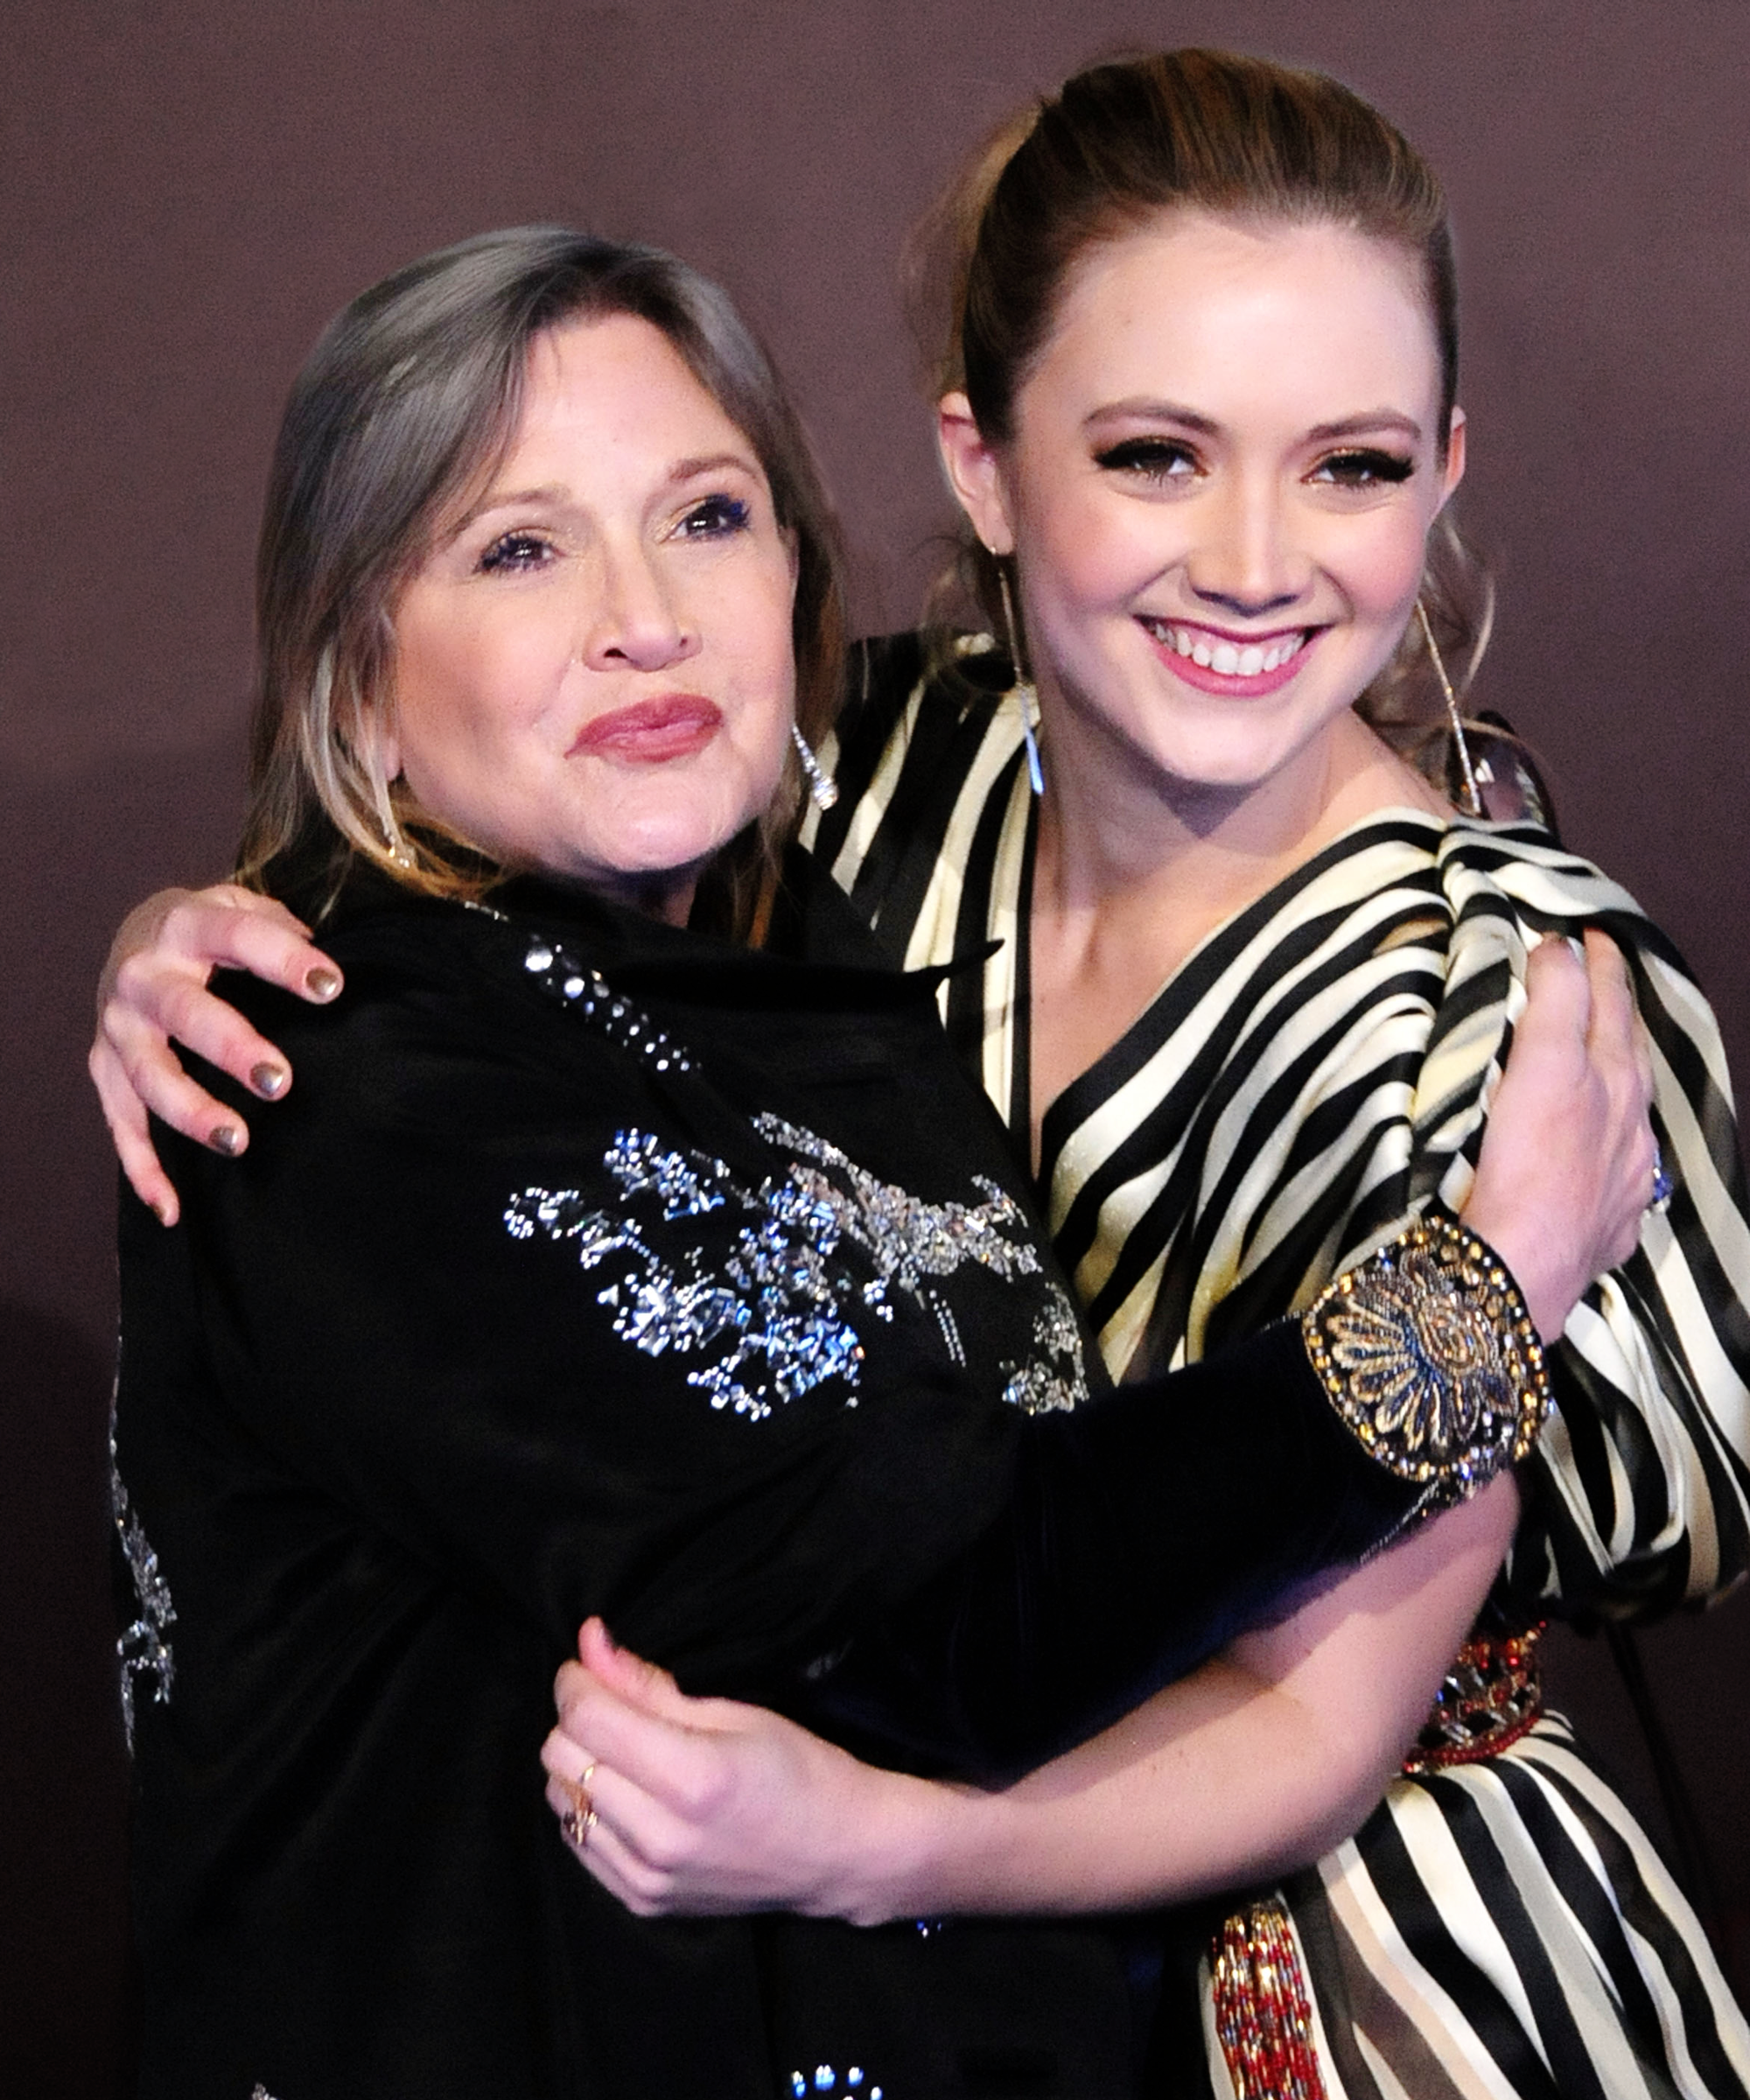 Billie Lourd Hopes Her Mom Carrie Fisher's Cause Of Death Will Inspire Others To Get Help